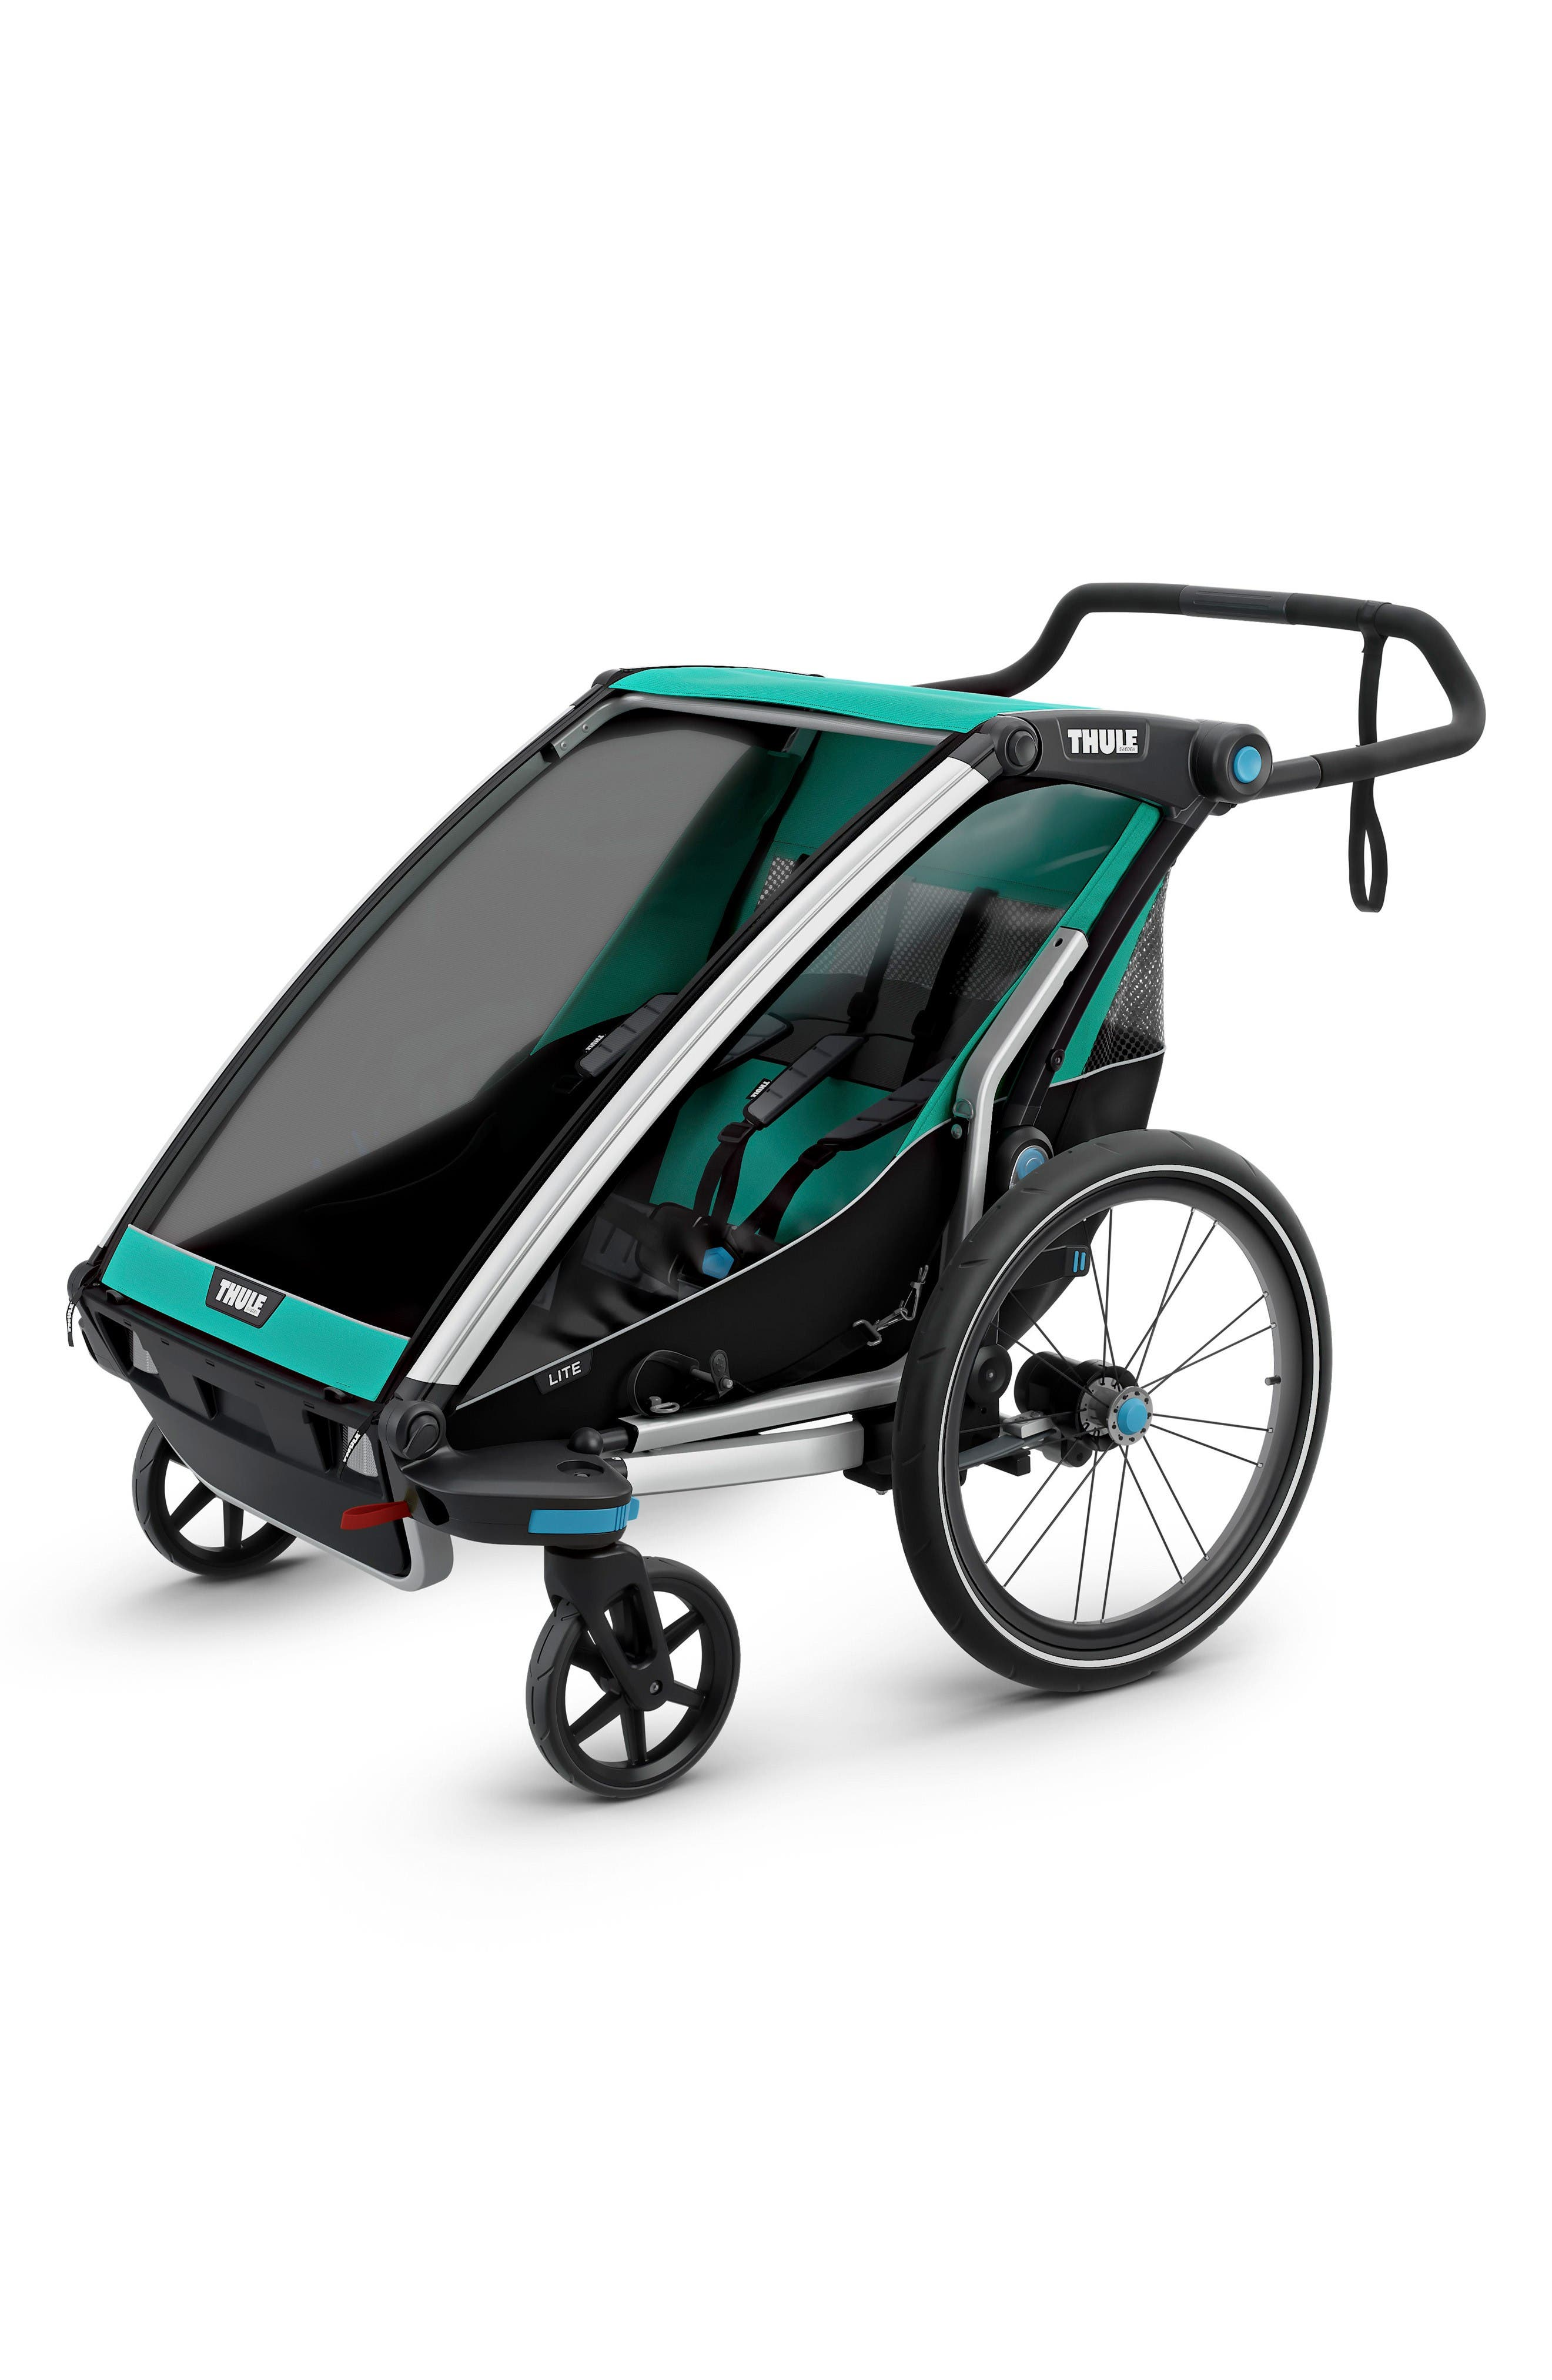 Alternate Image 1 Selected - Thule Chariot Lite 2 Multisport Double Cycle Trailer/Stroller